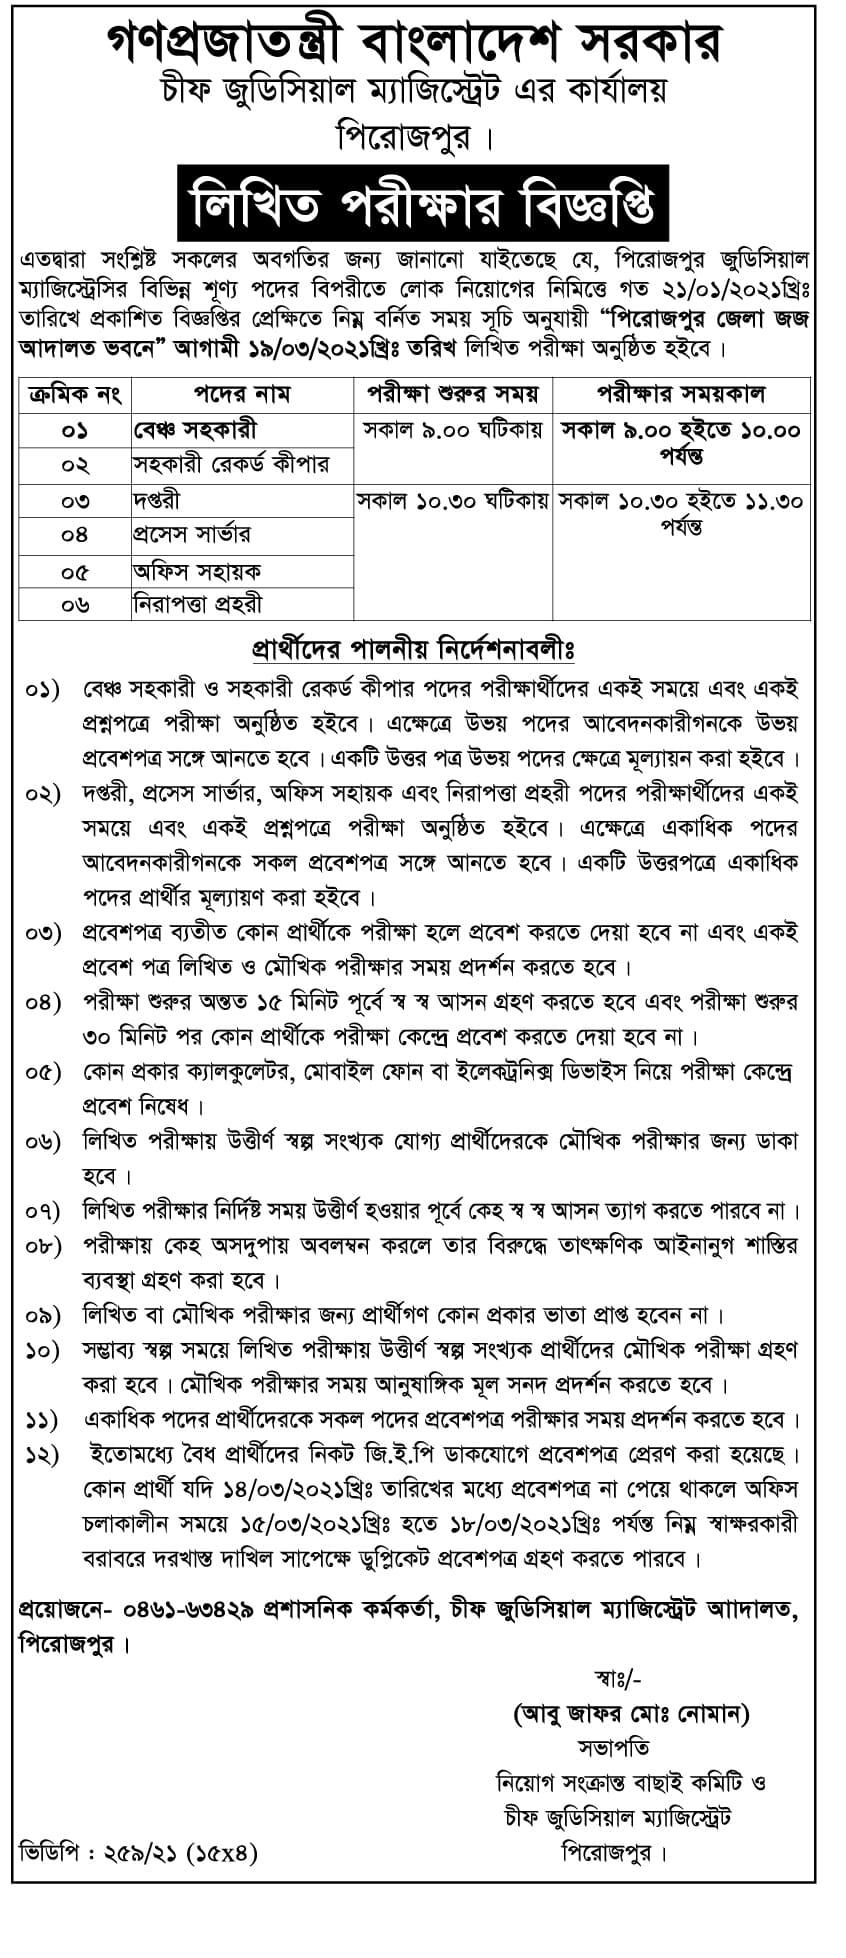 Pirojpur Chief Judicial Magistrate Job Exam Date 2021